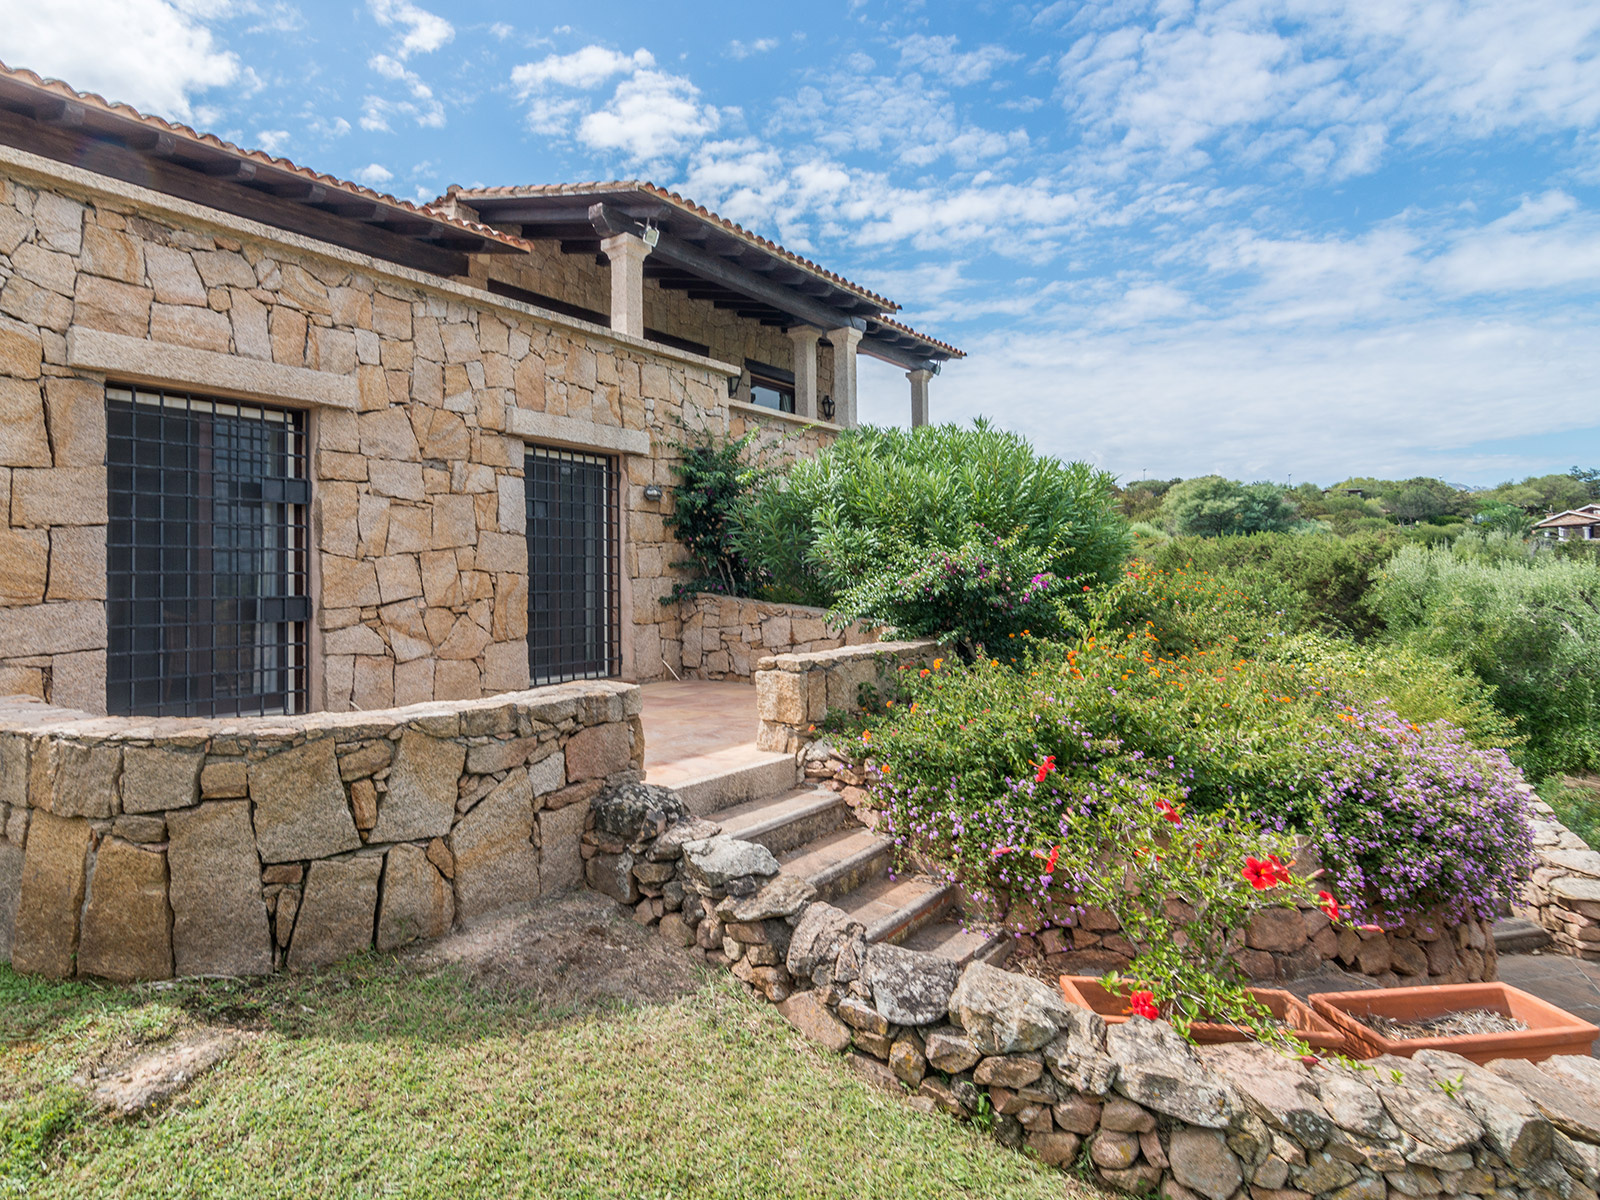 Single Family Home for Sale at Villa in Sardinian style with private garden Porto Rotondo, Olbia Tempio Italy